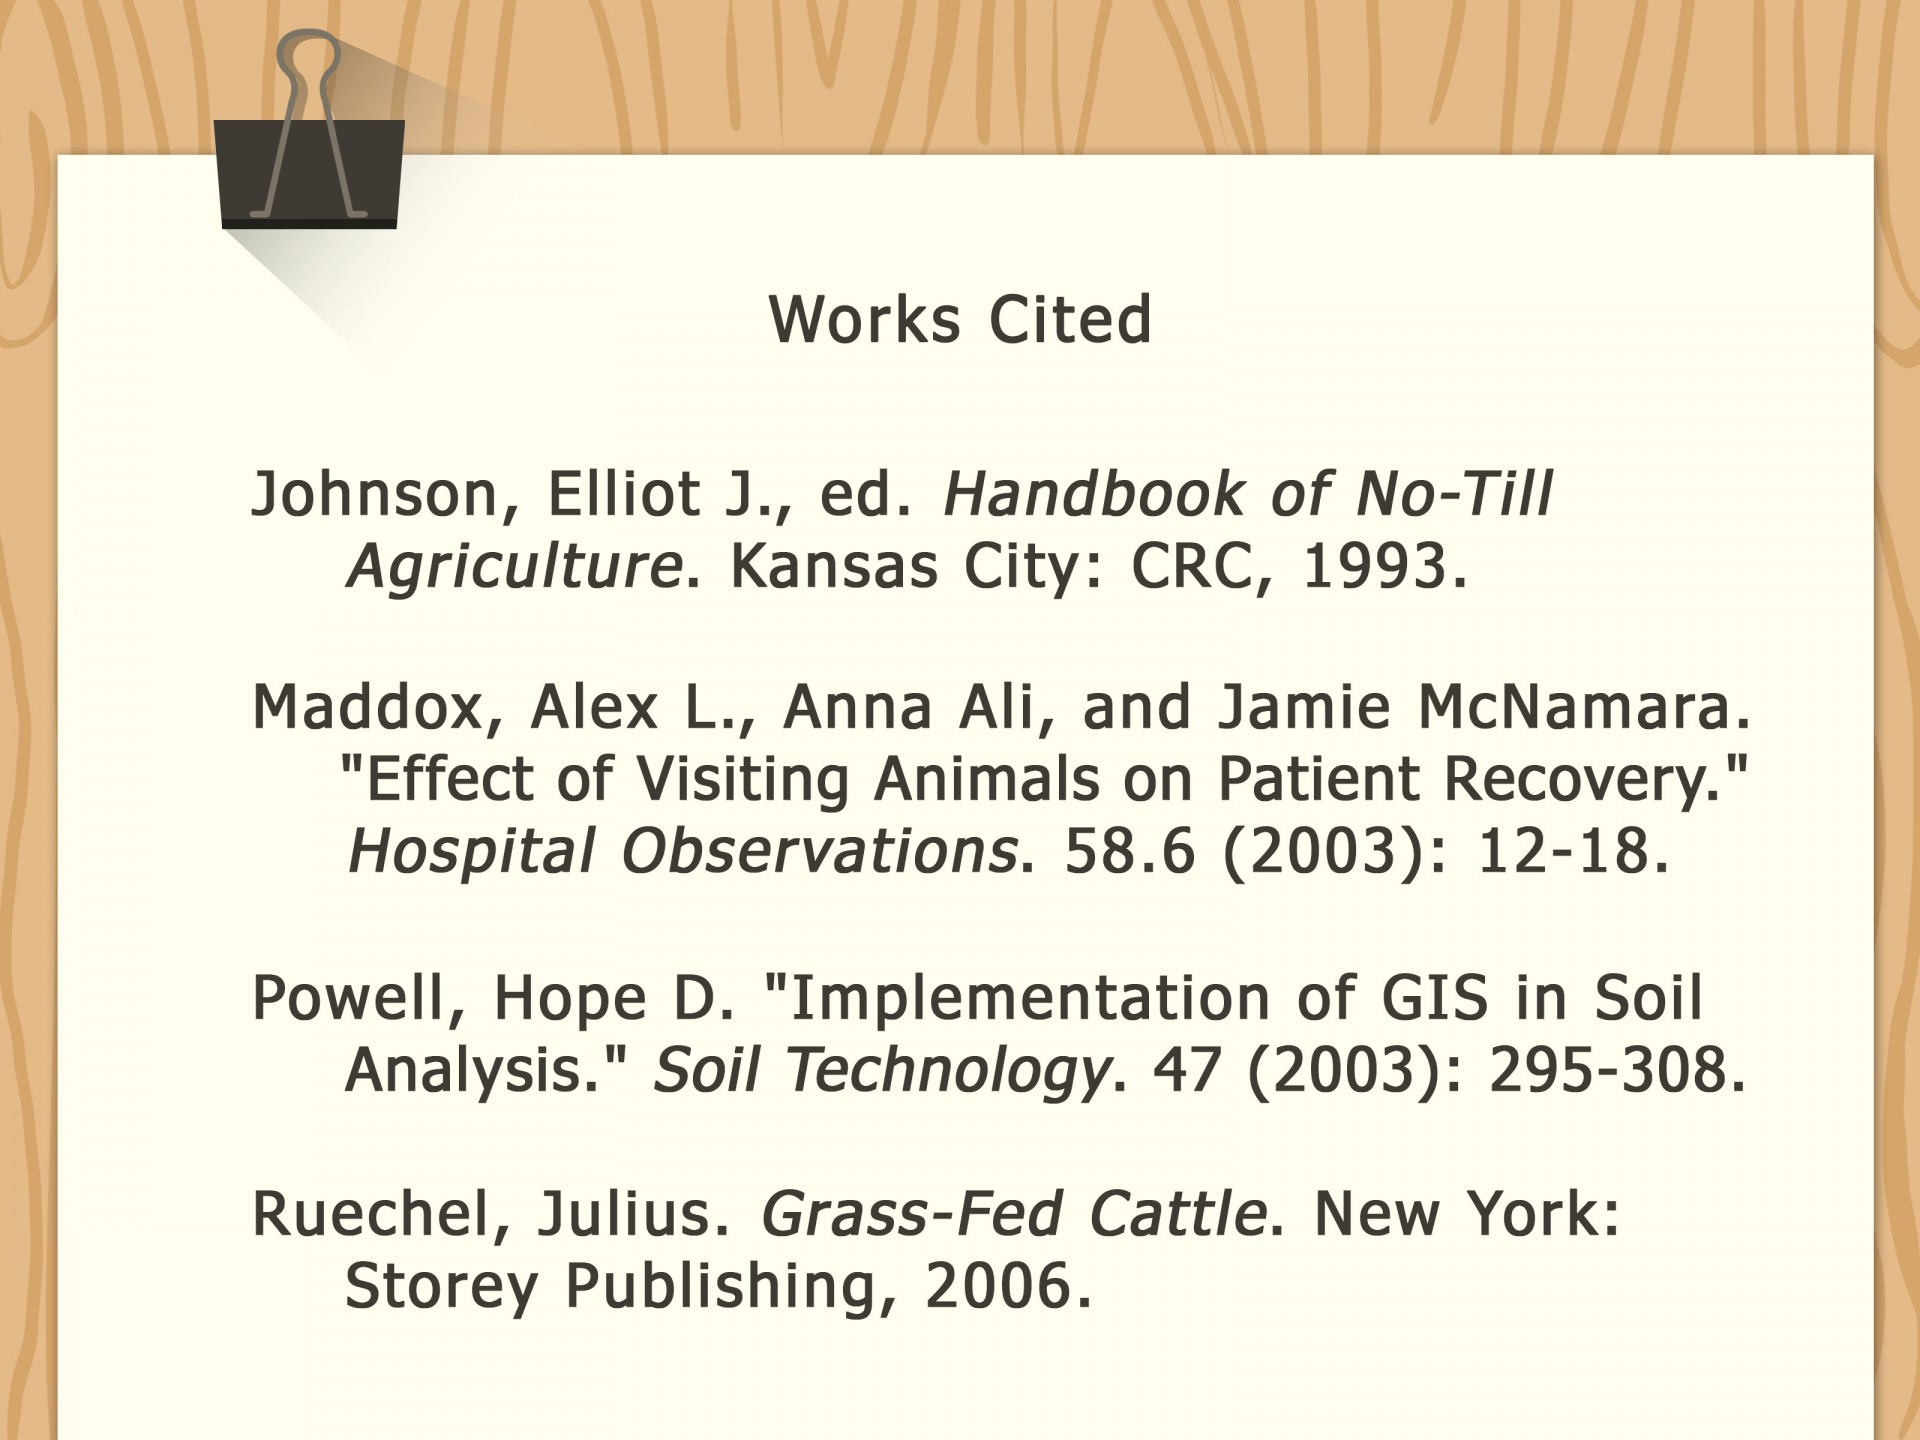 011 Research Paper Cite Sources In Mla Format Step Version Citations Awesome A Citing Citation Example 1920